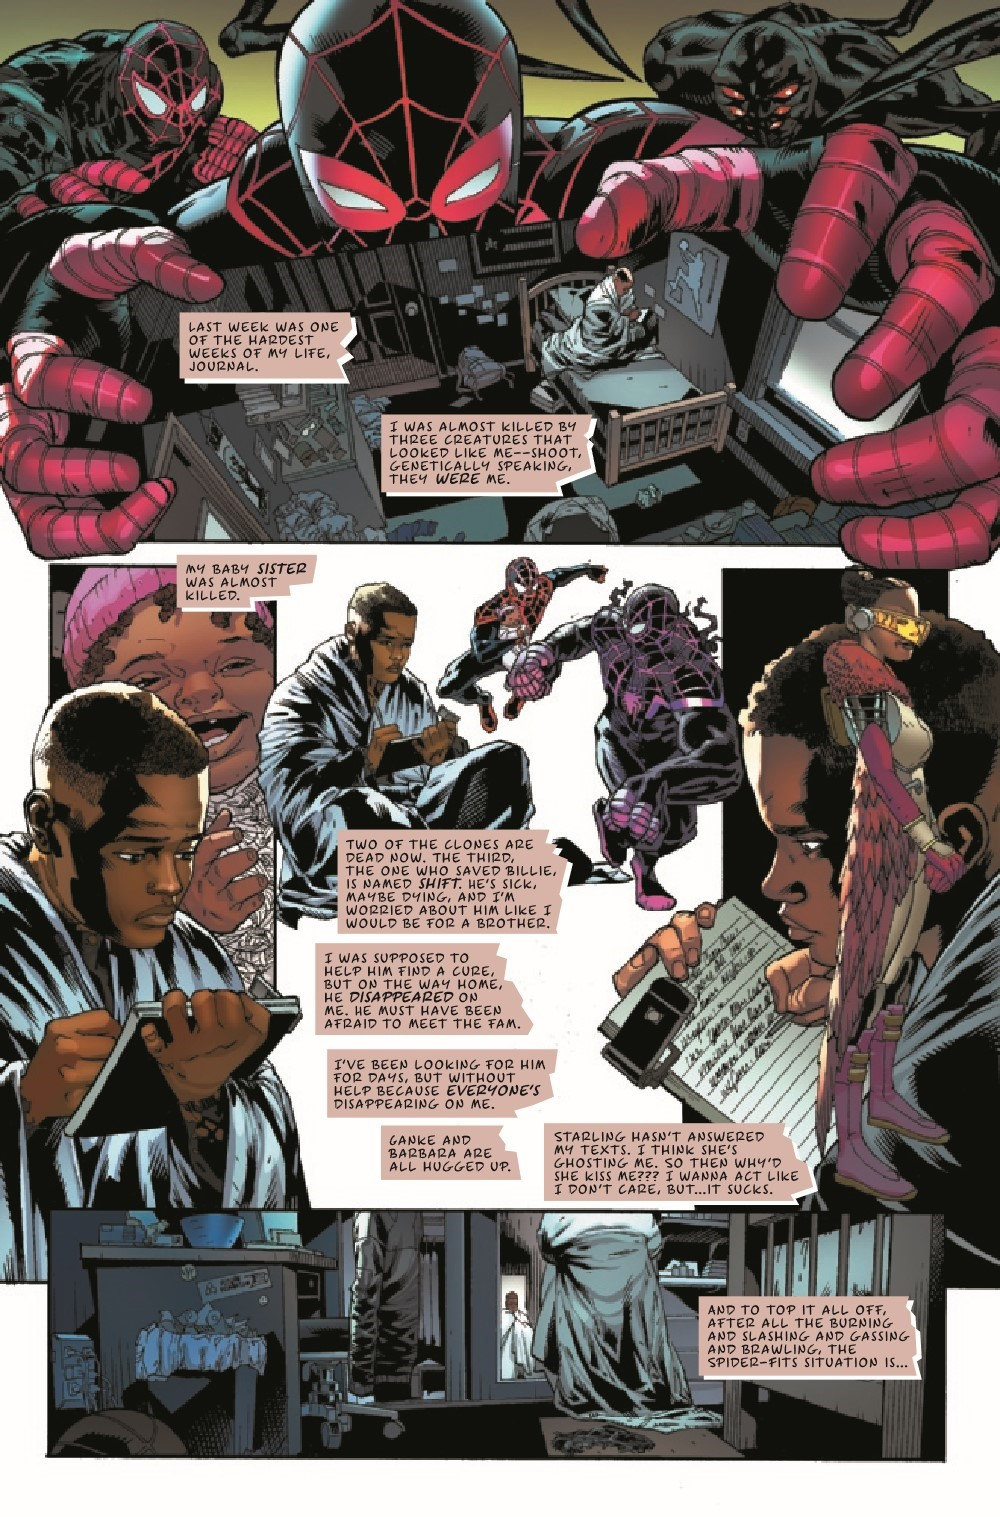 MMSM2018029_Preview-3 ComicList Previews: MILES MORALES SPIDER-MAN #29